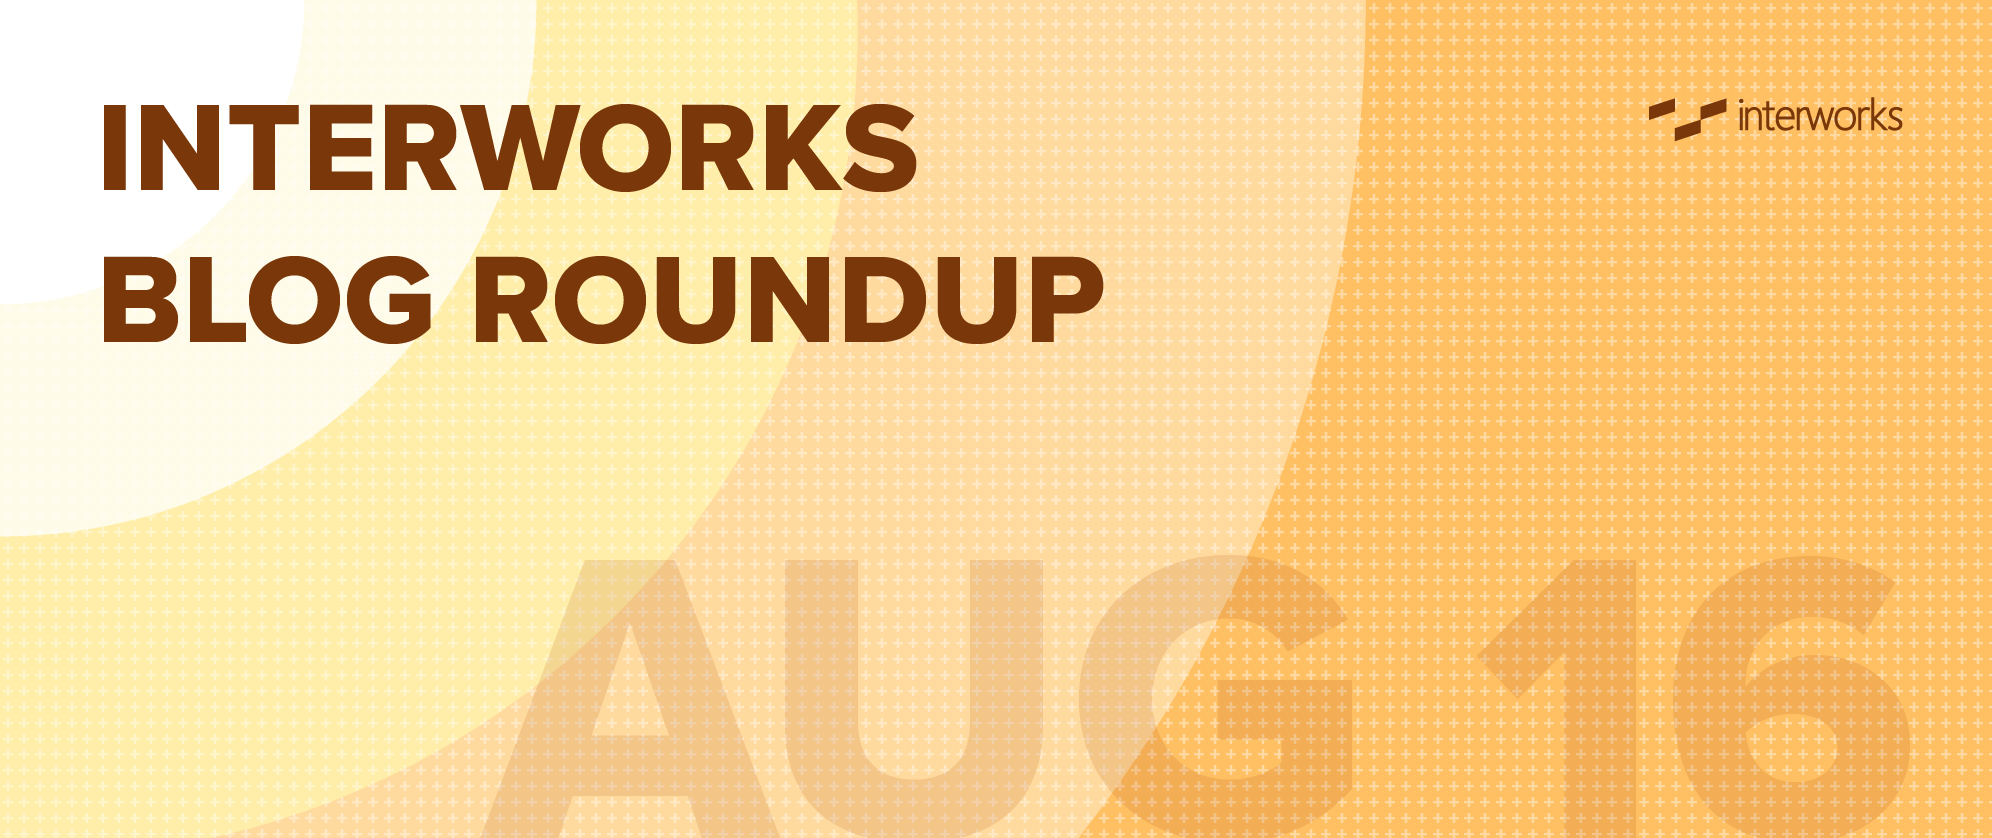 InterWorks Blog Roundup - Aug 2016